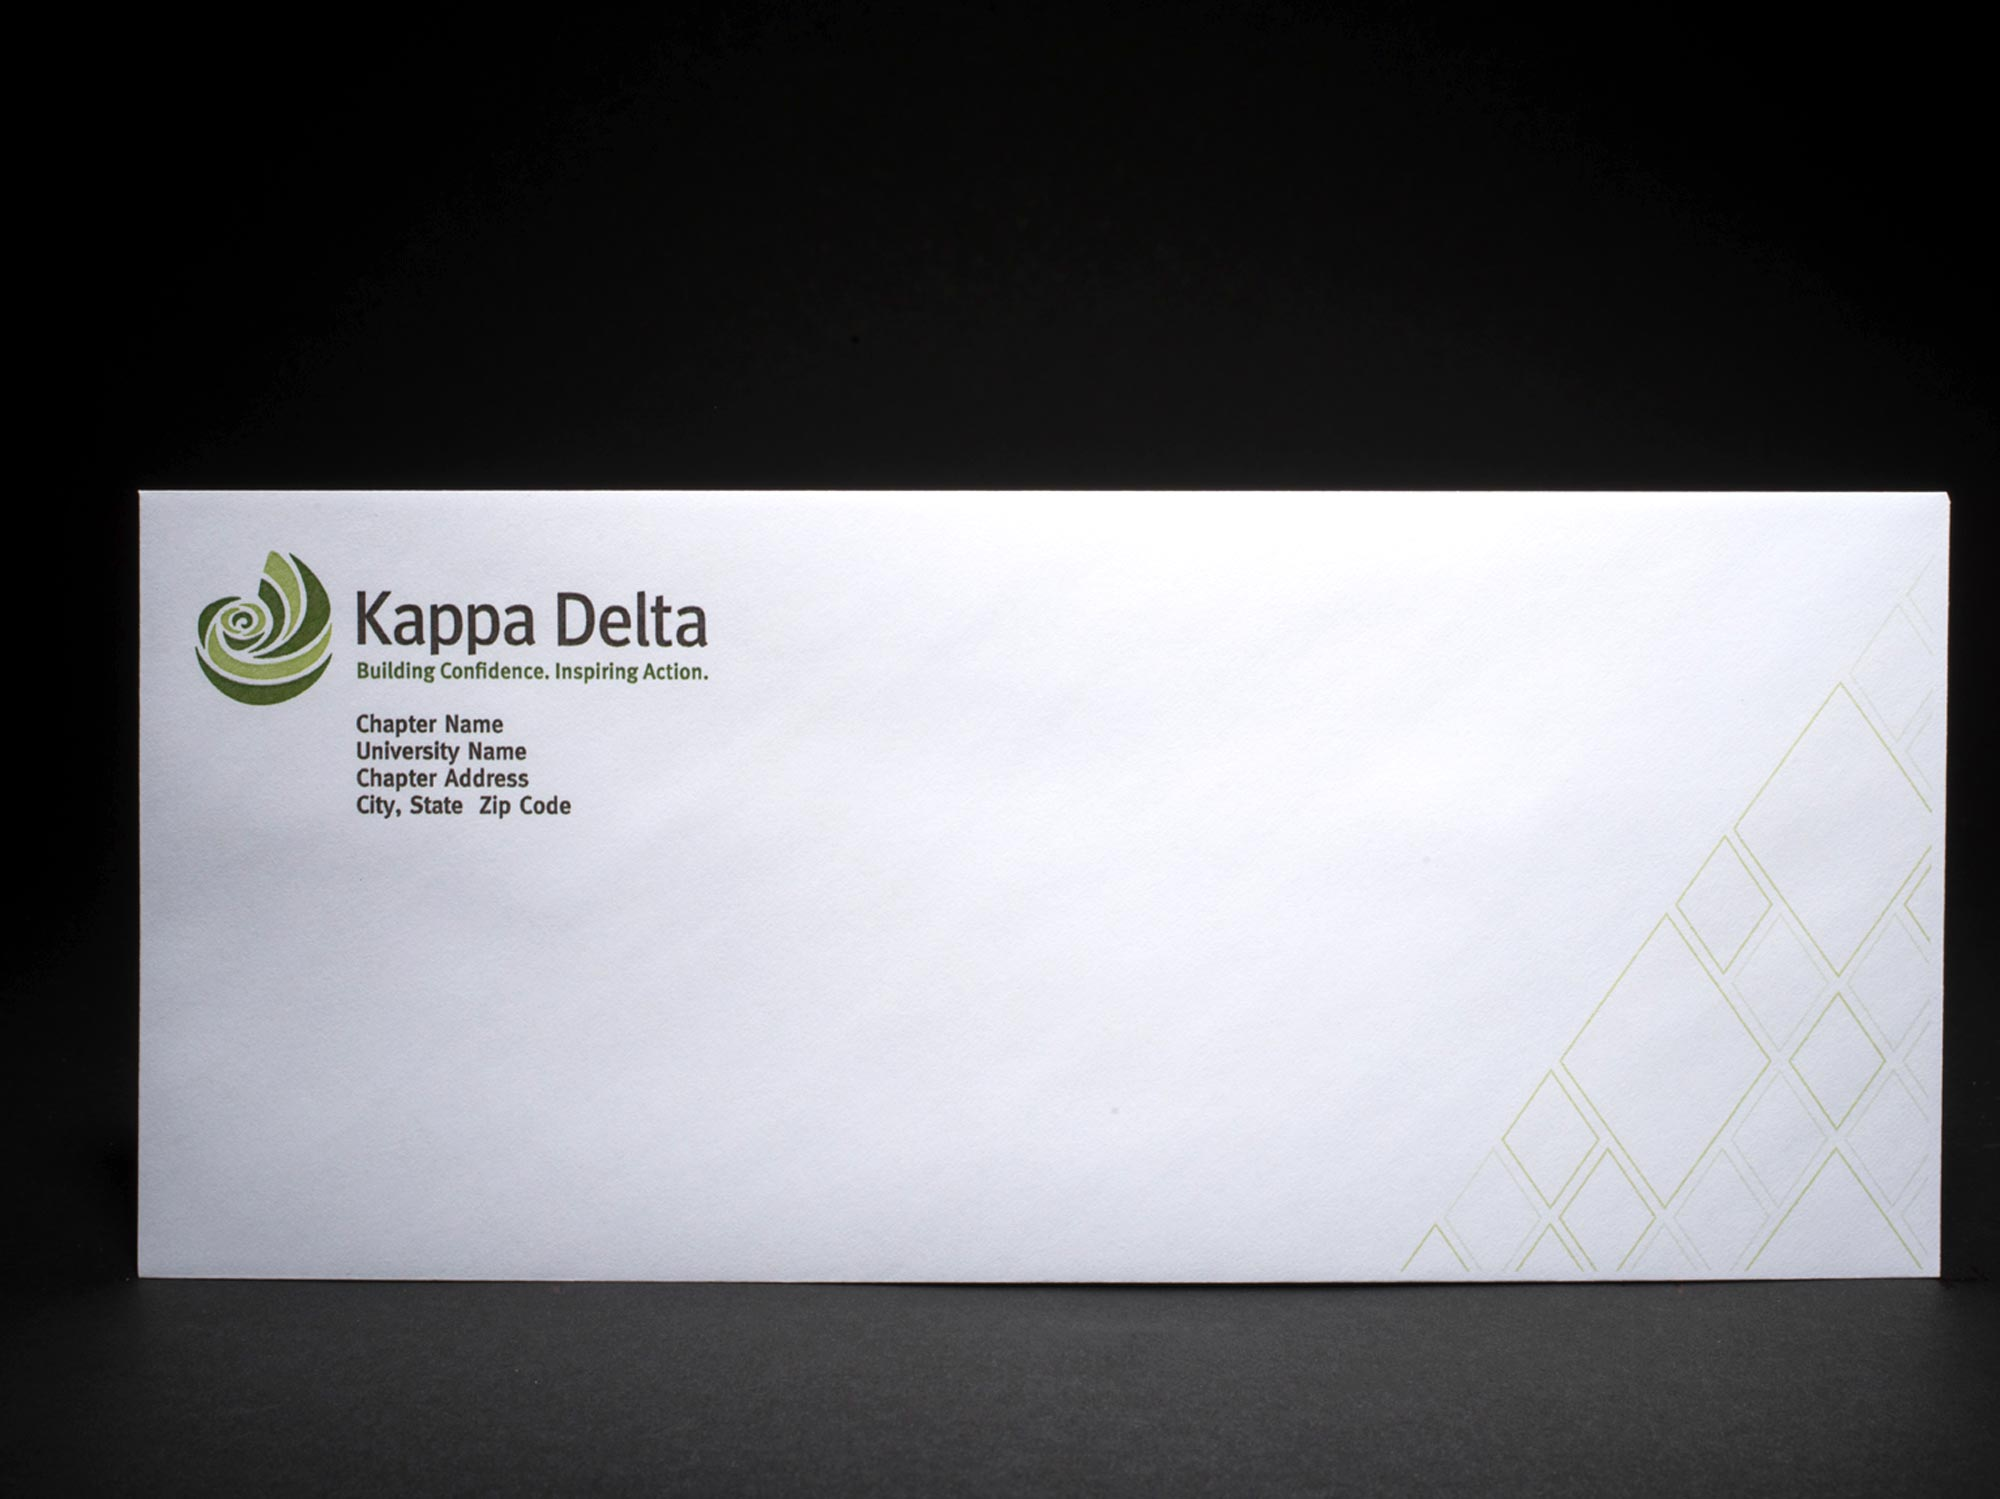 Official Business Envelopes Kappa Delta